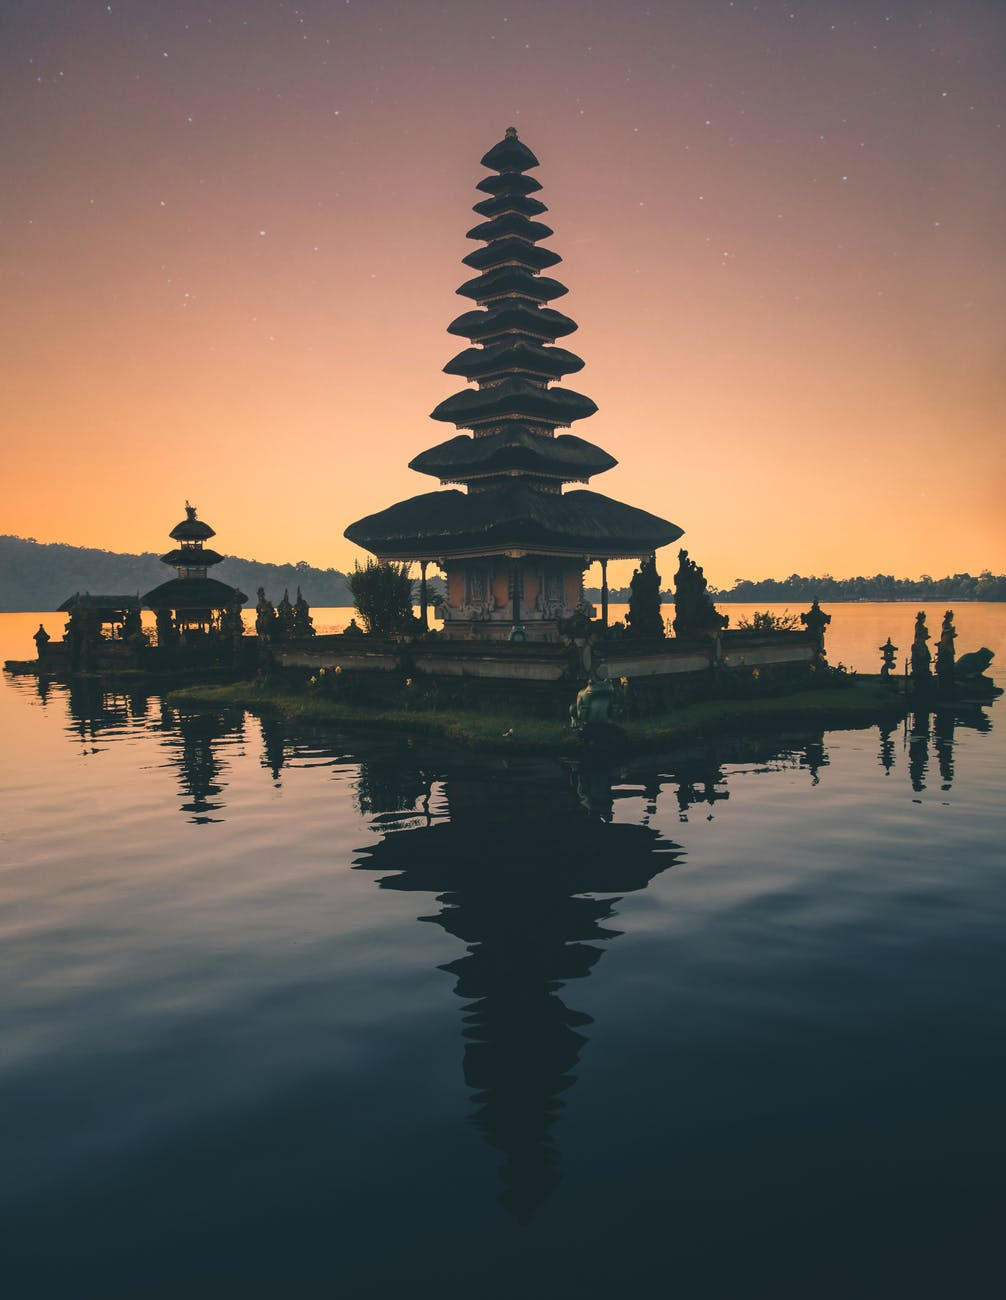 brown pagoda near body of water